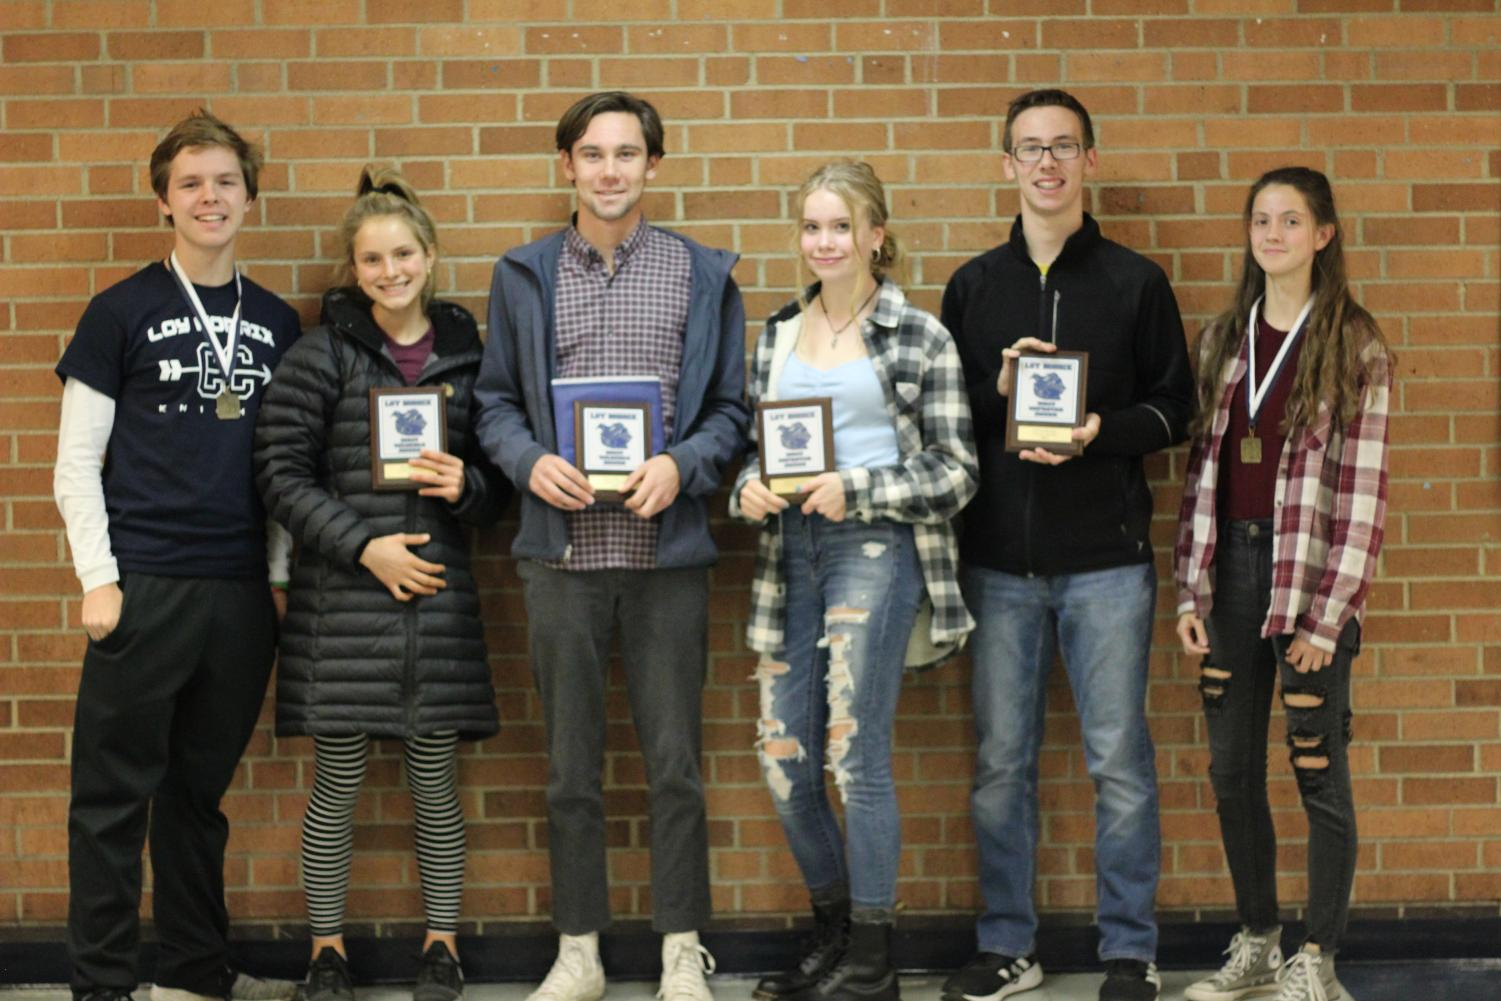 From left to right, junior Keegan Hughes, seniors Ella Schnell and Jozef Meyers, sophomores Lillian Daniels and Gavin Rozanc, and junior Kinsey Skjold pose for a photo after receiving their awards at the cross country awards ceremony. Hughes and Skjold received the sportsmanship award, Meyers and Schnell won the MVP award, and Daniels and Rozanc won the most improved award. Photo Credit / Colin Carnell